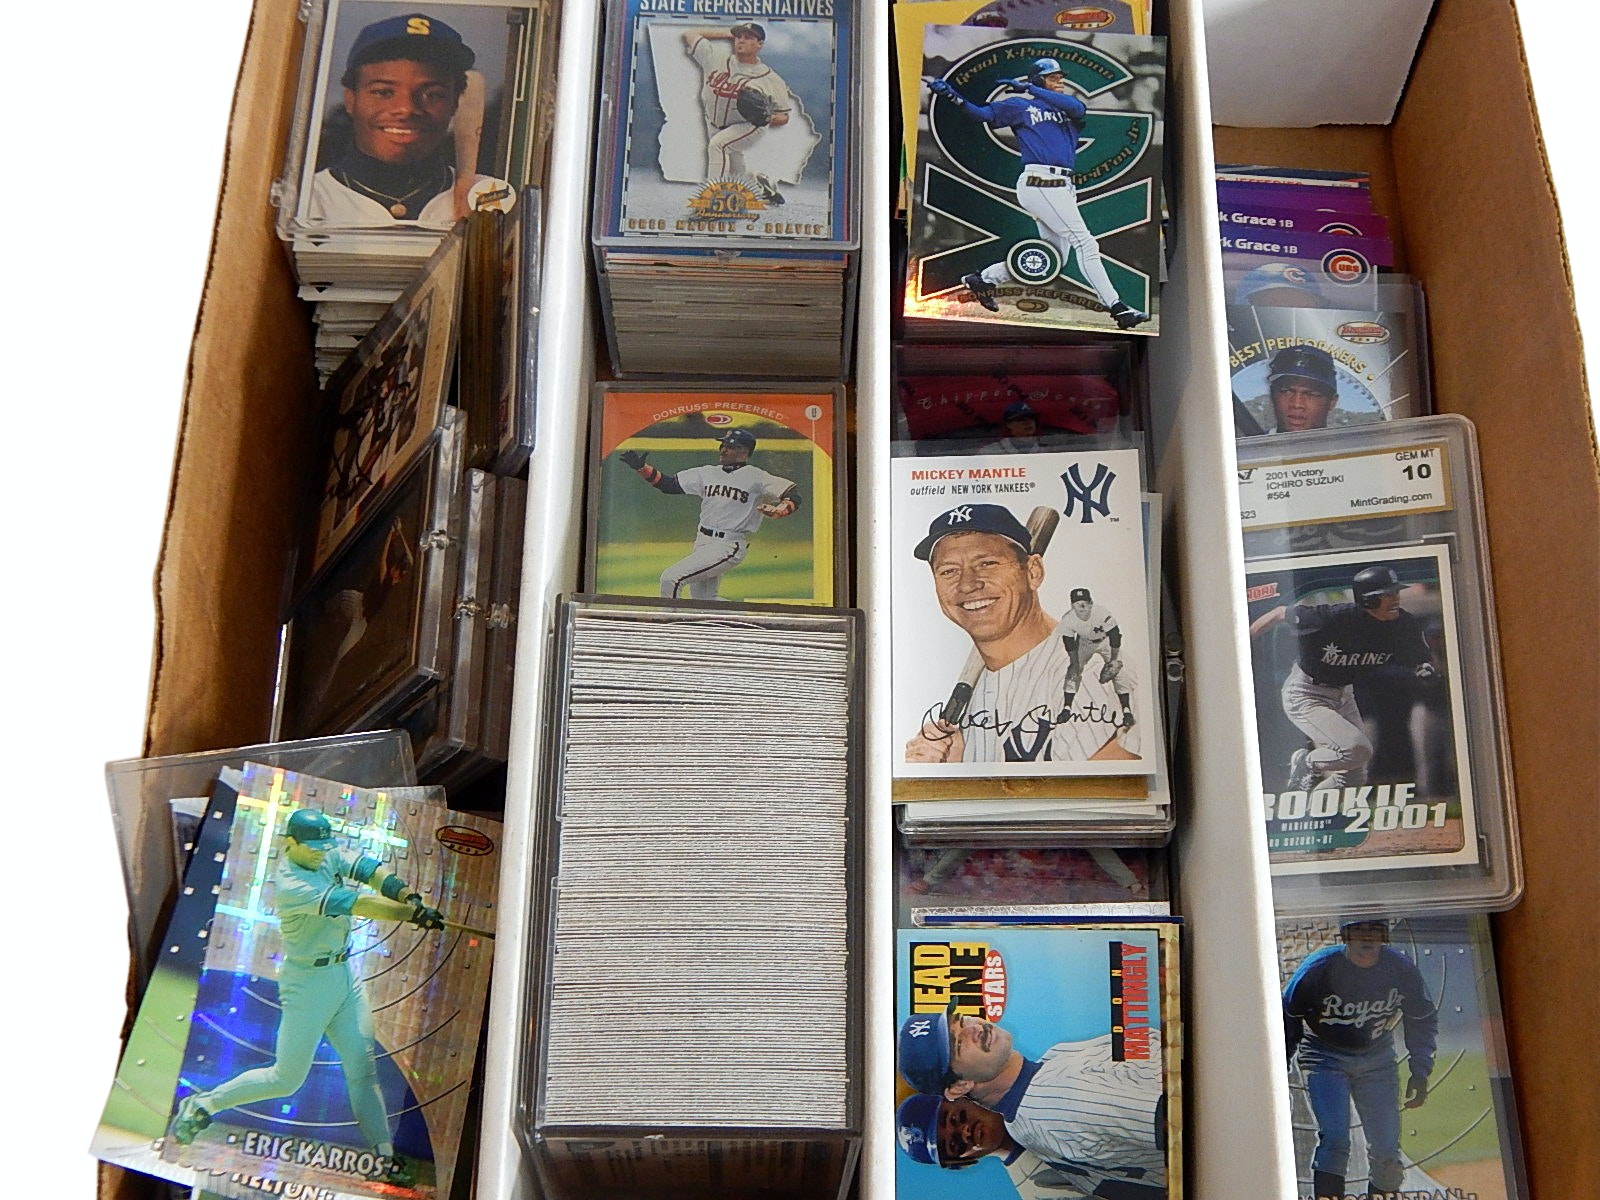 Box of Baseball Cards from 1980s to 2010s with Xfractors, Rookie, Inserts, More